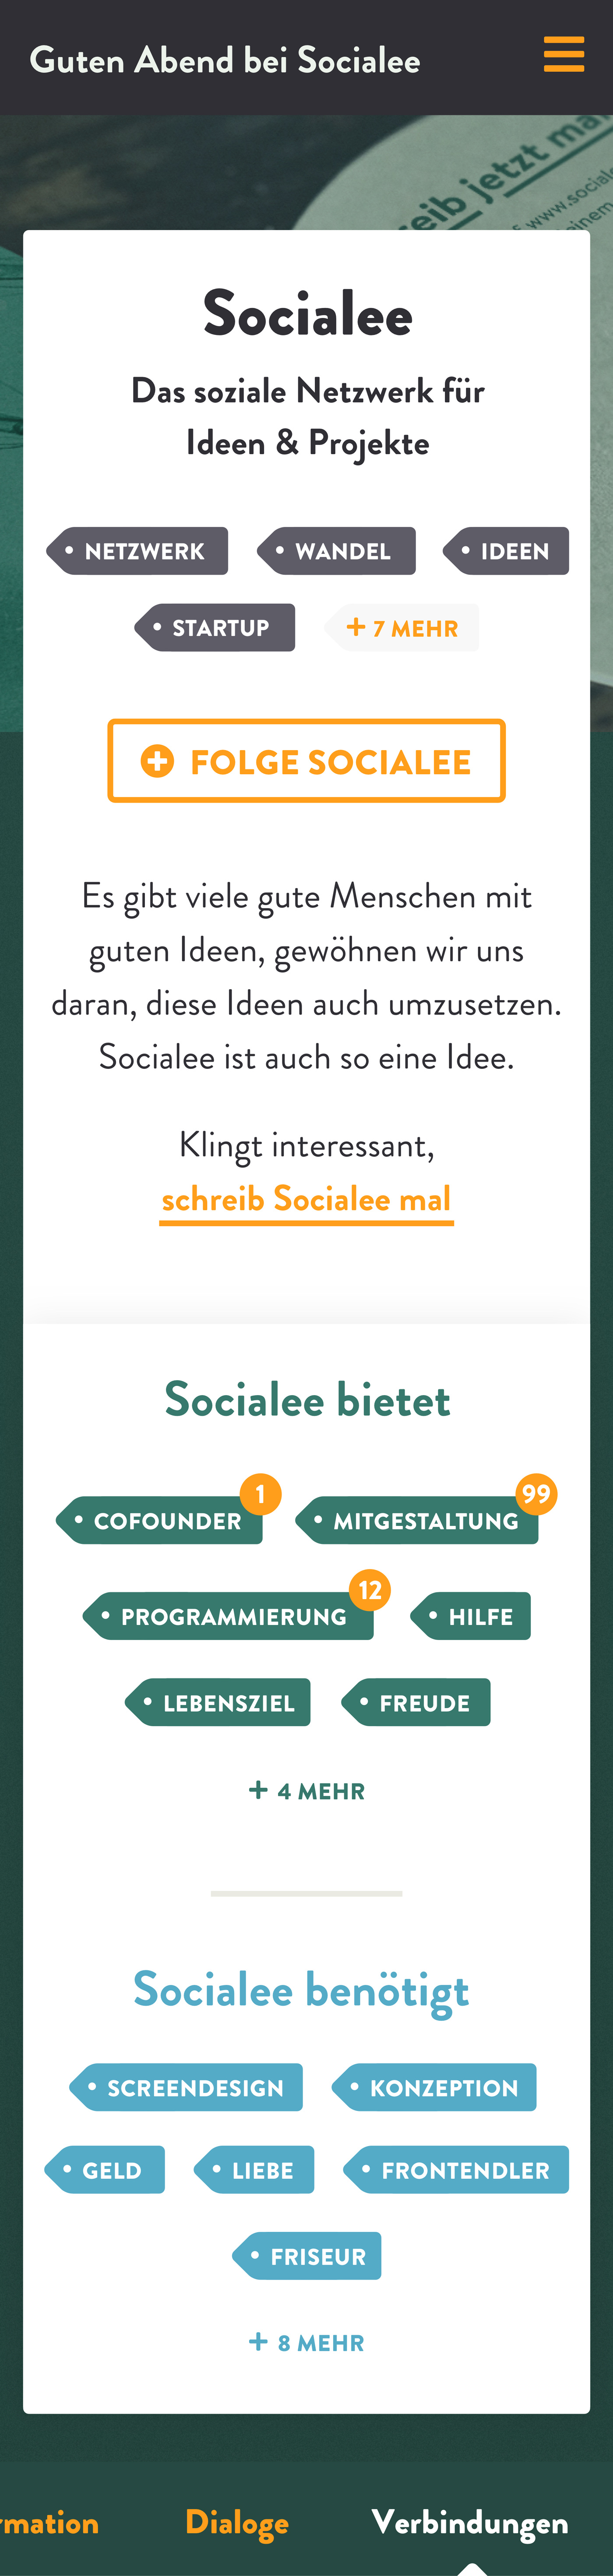 Socialee_Project_Mobile